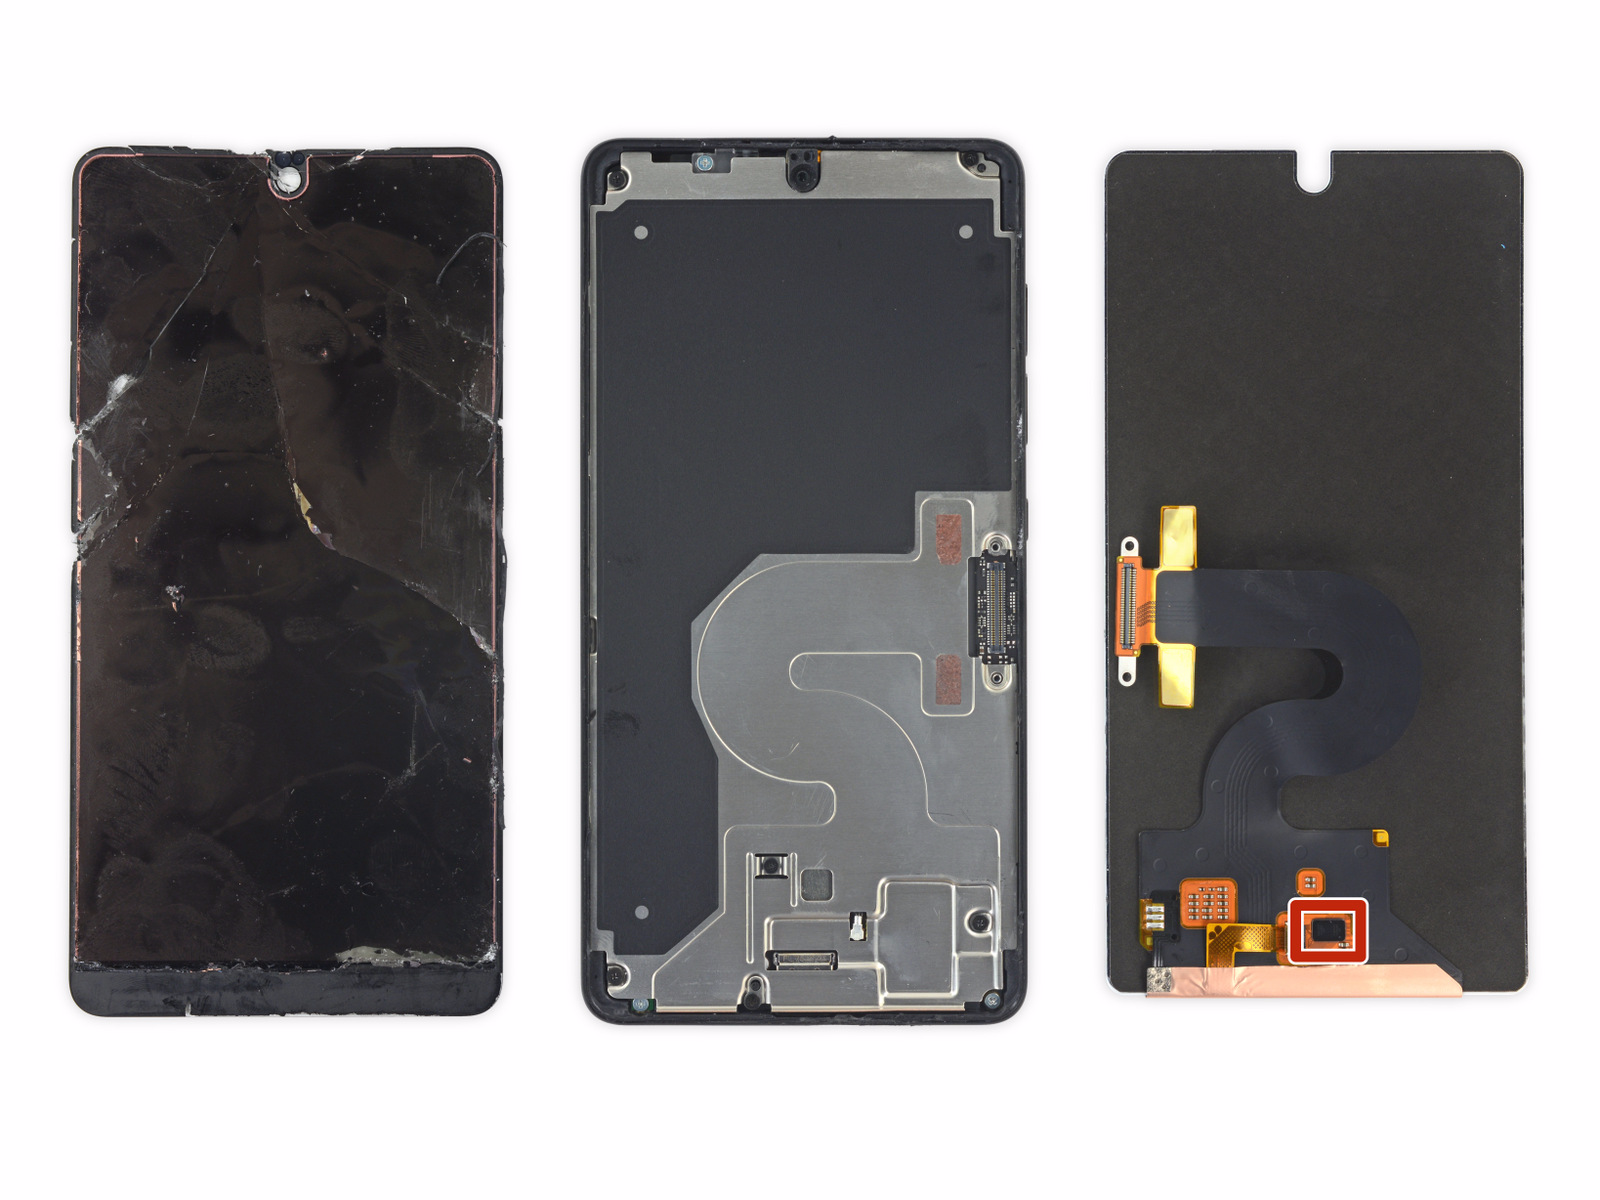 Essential Phone gets one of worst repairability ratings on iFixit